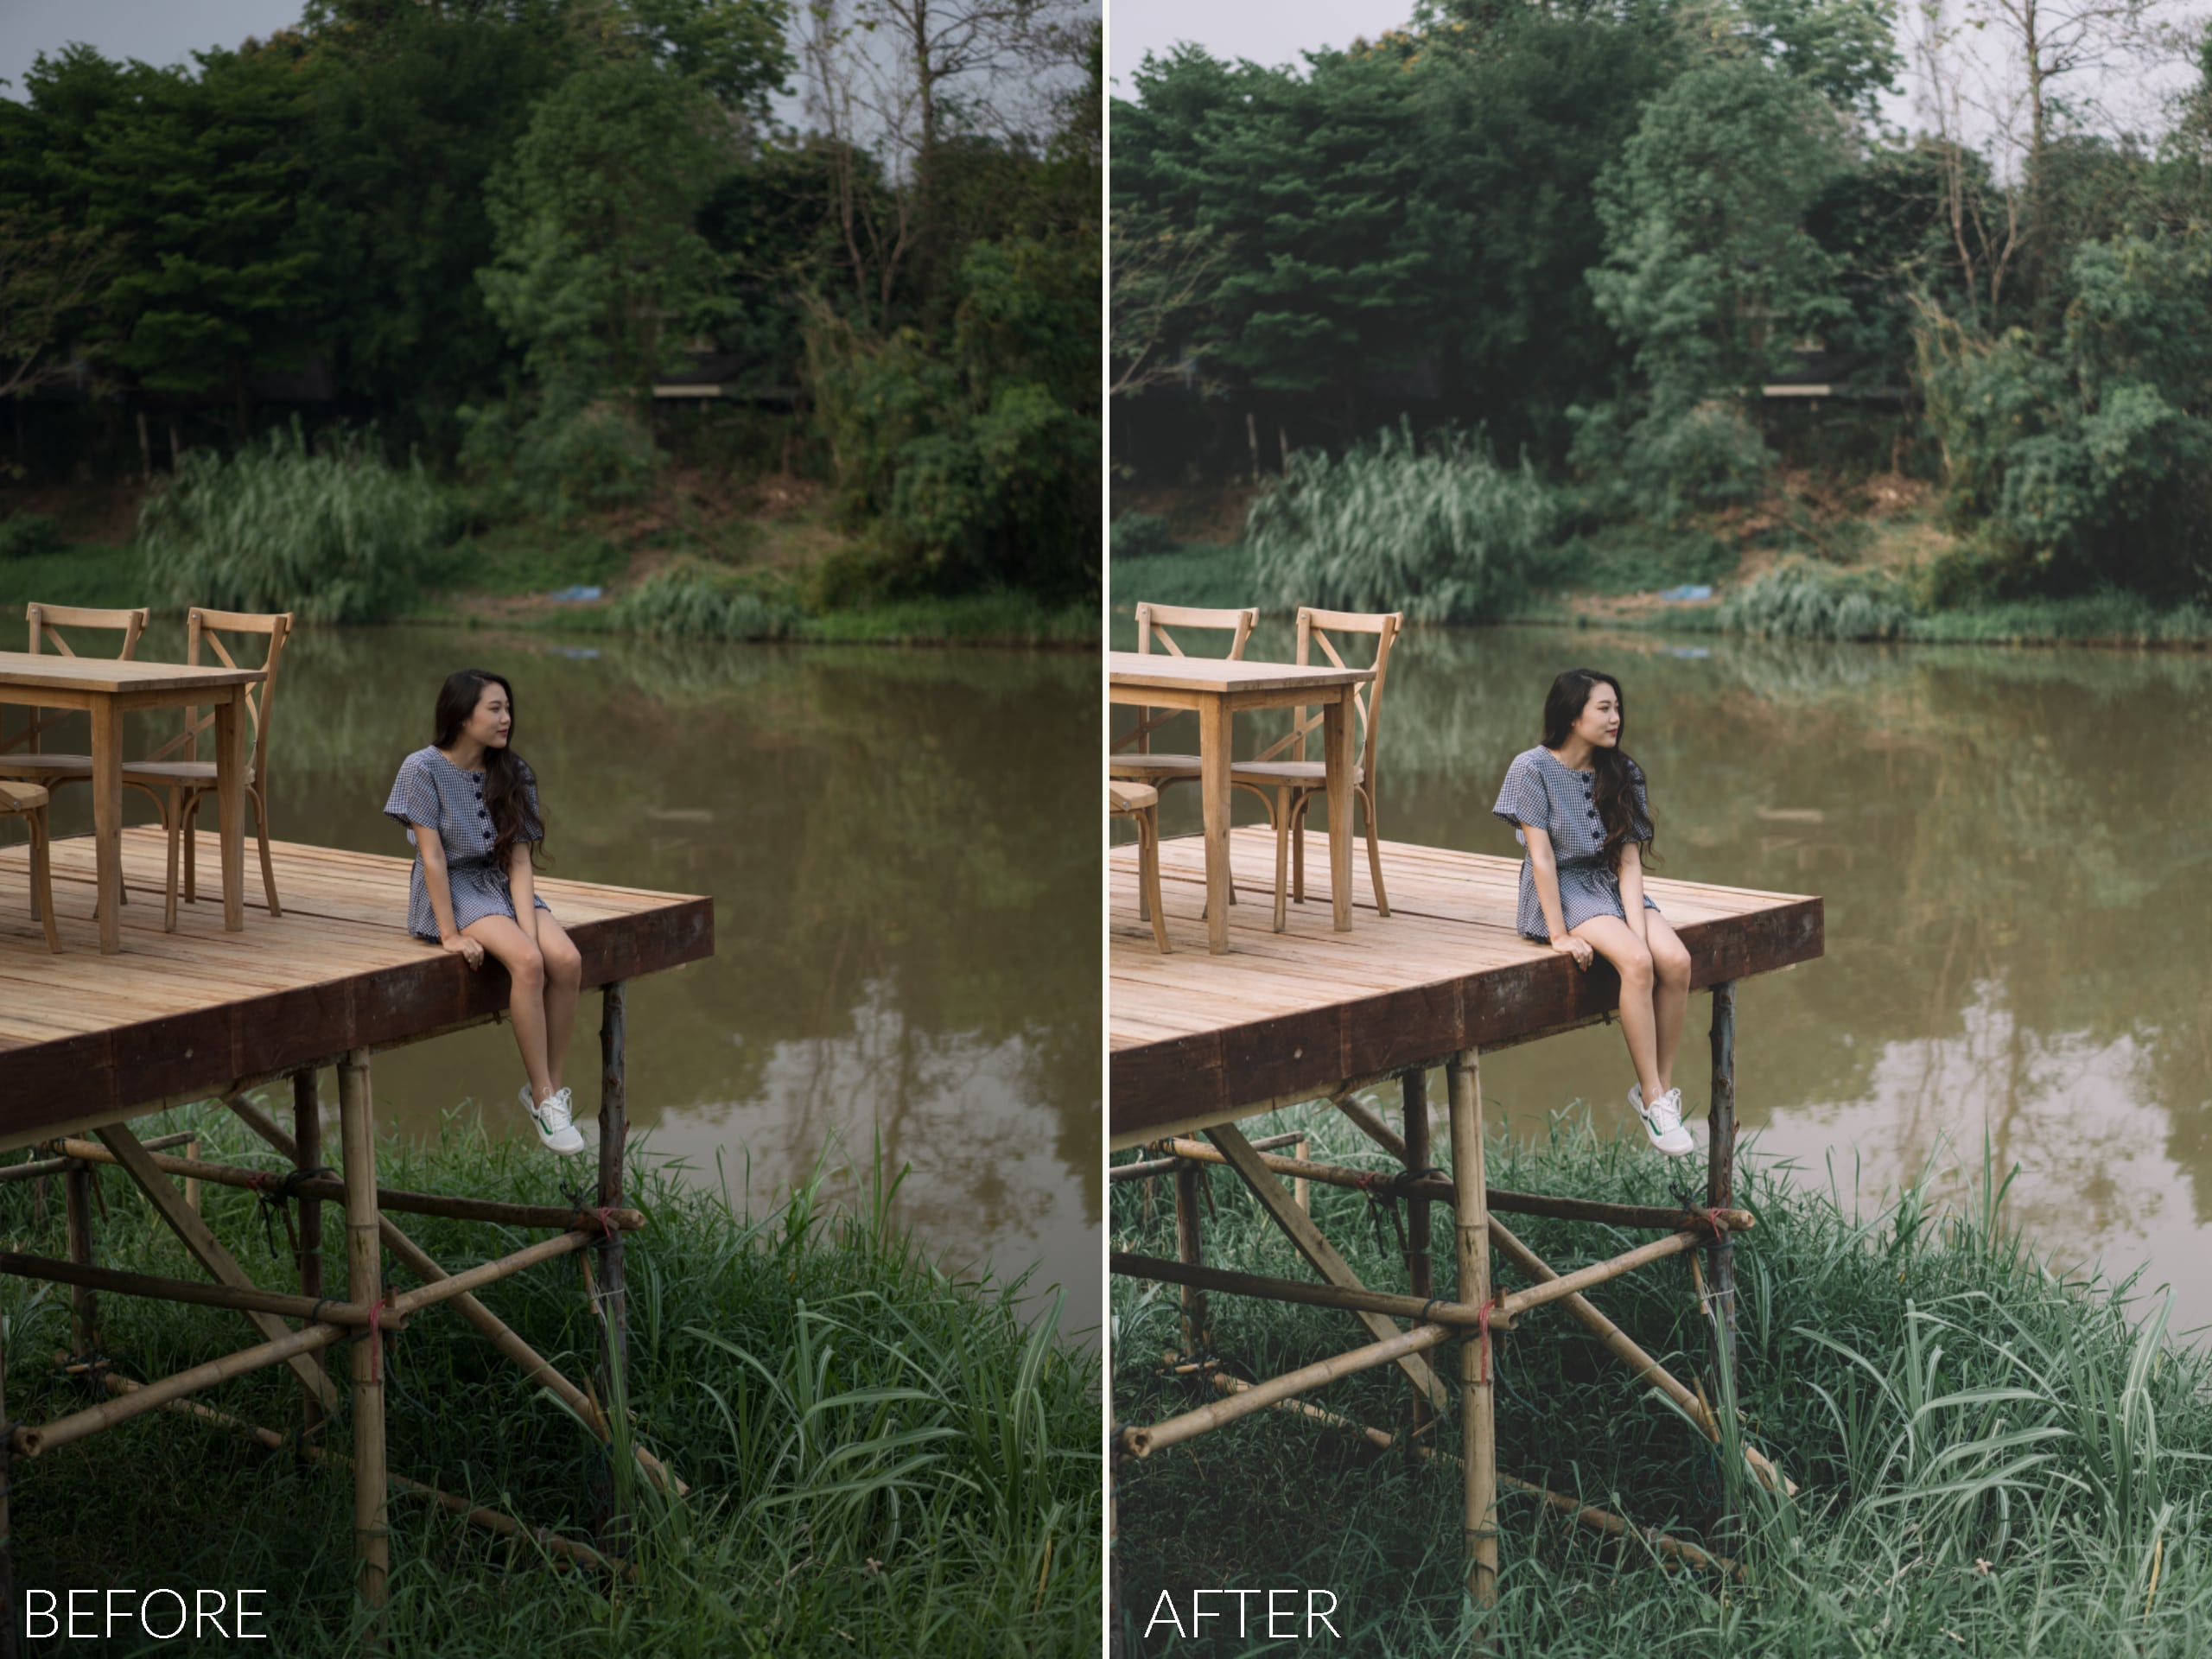 BEFORE AFTER TEST Copy 2 (5)